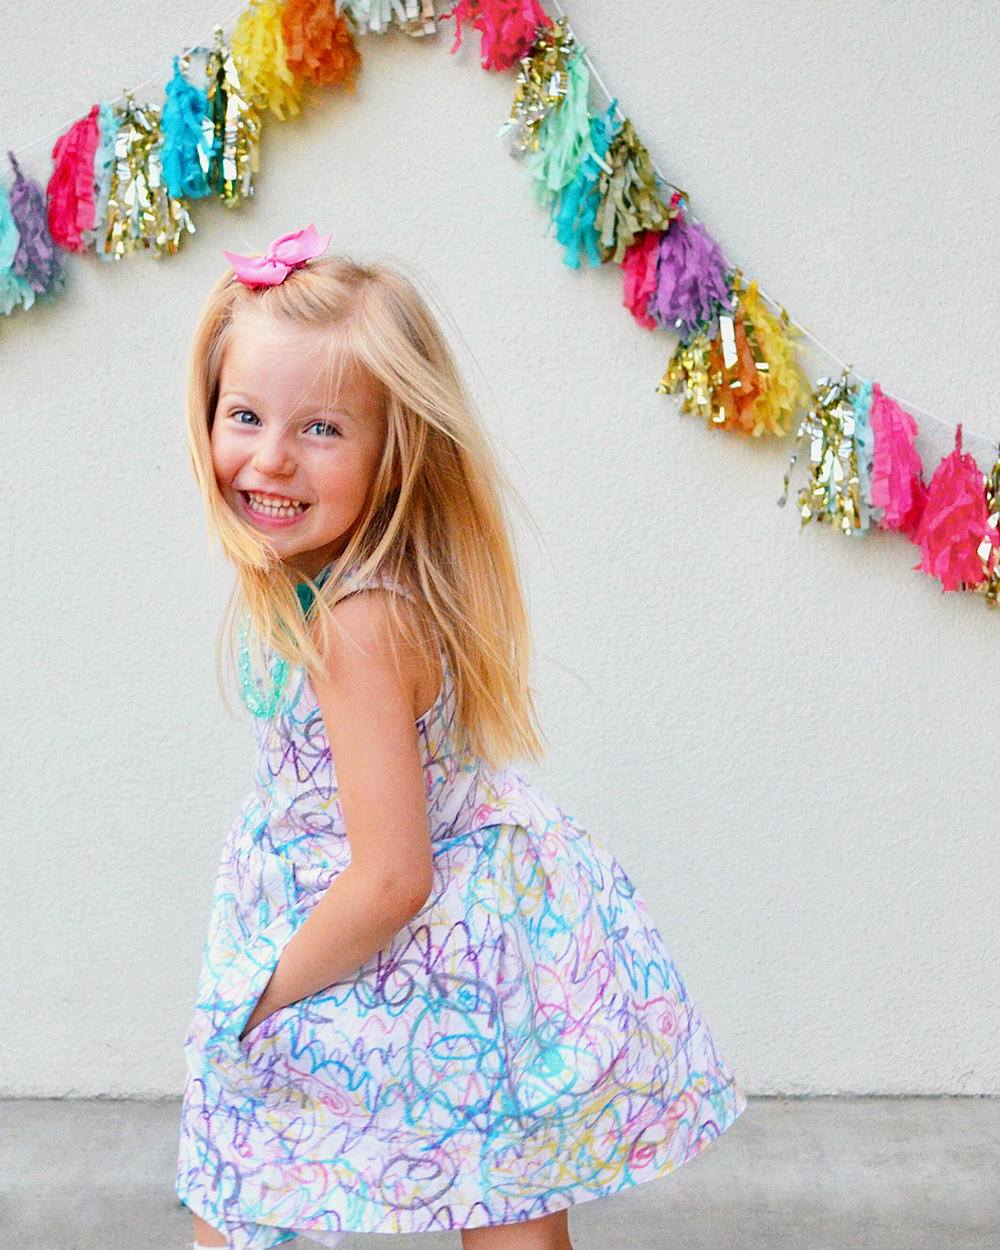 Laelia's Scribble Print Dress; How I Turned Her Artwork into a Dress